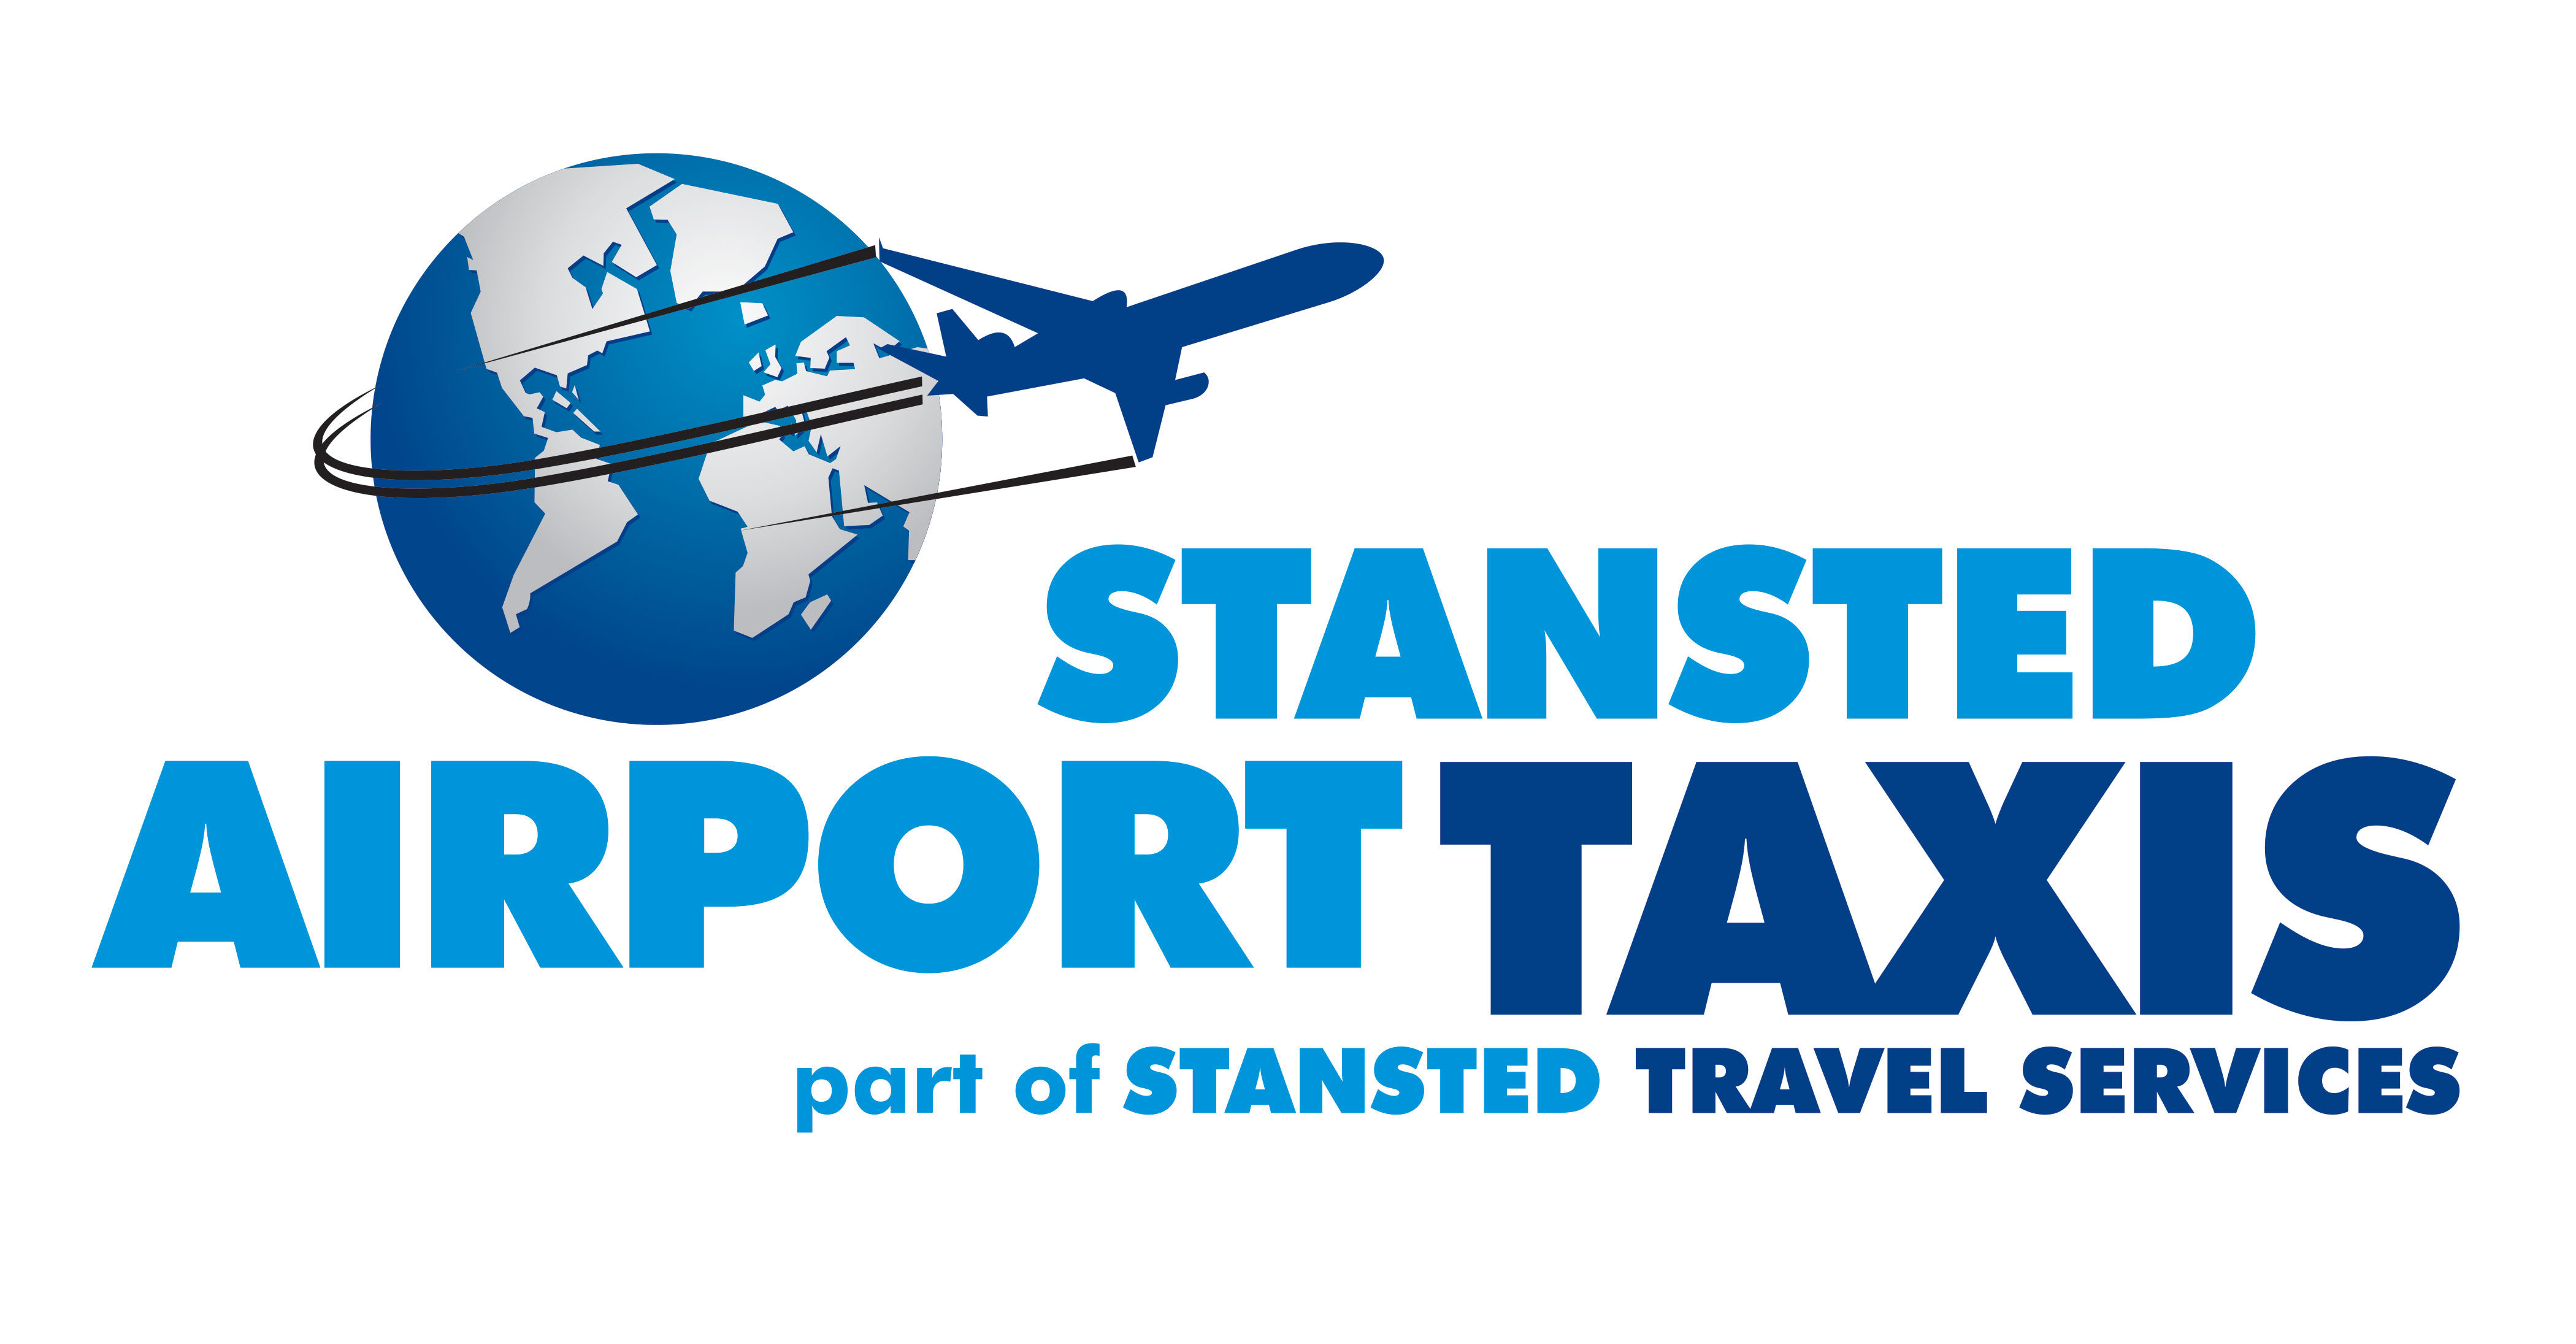 stansted airport taxis logo